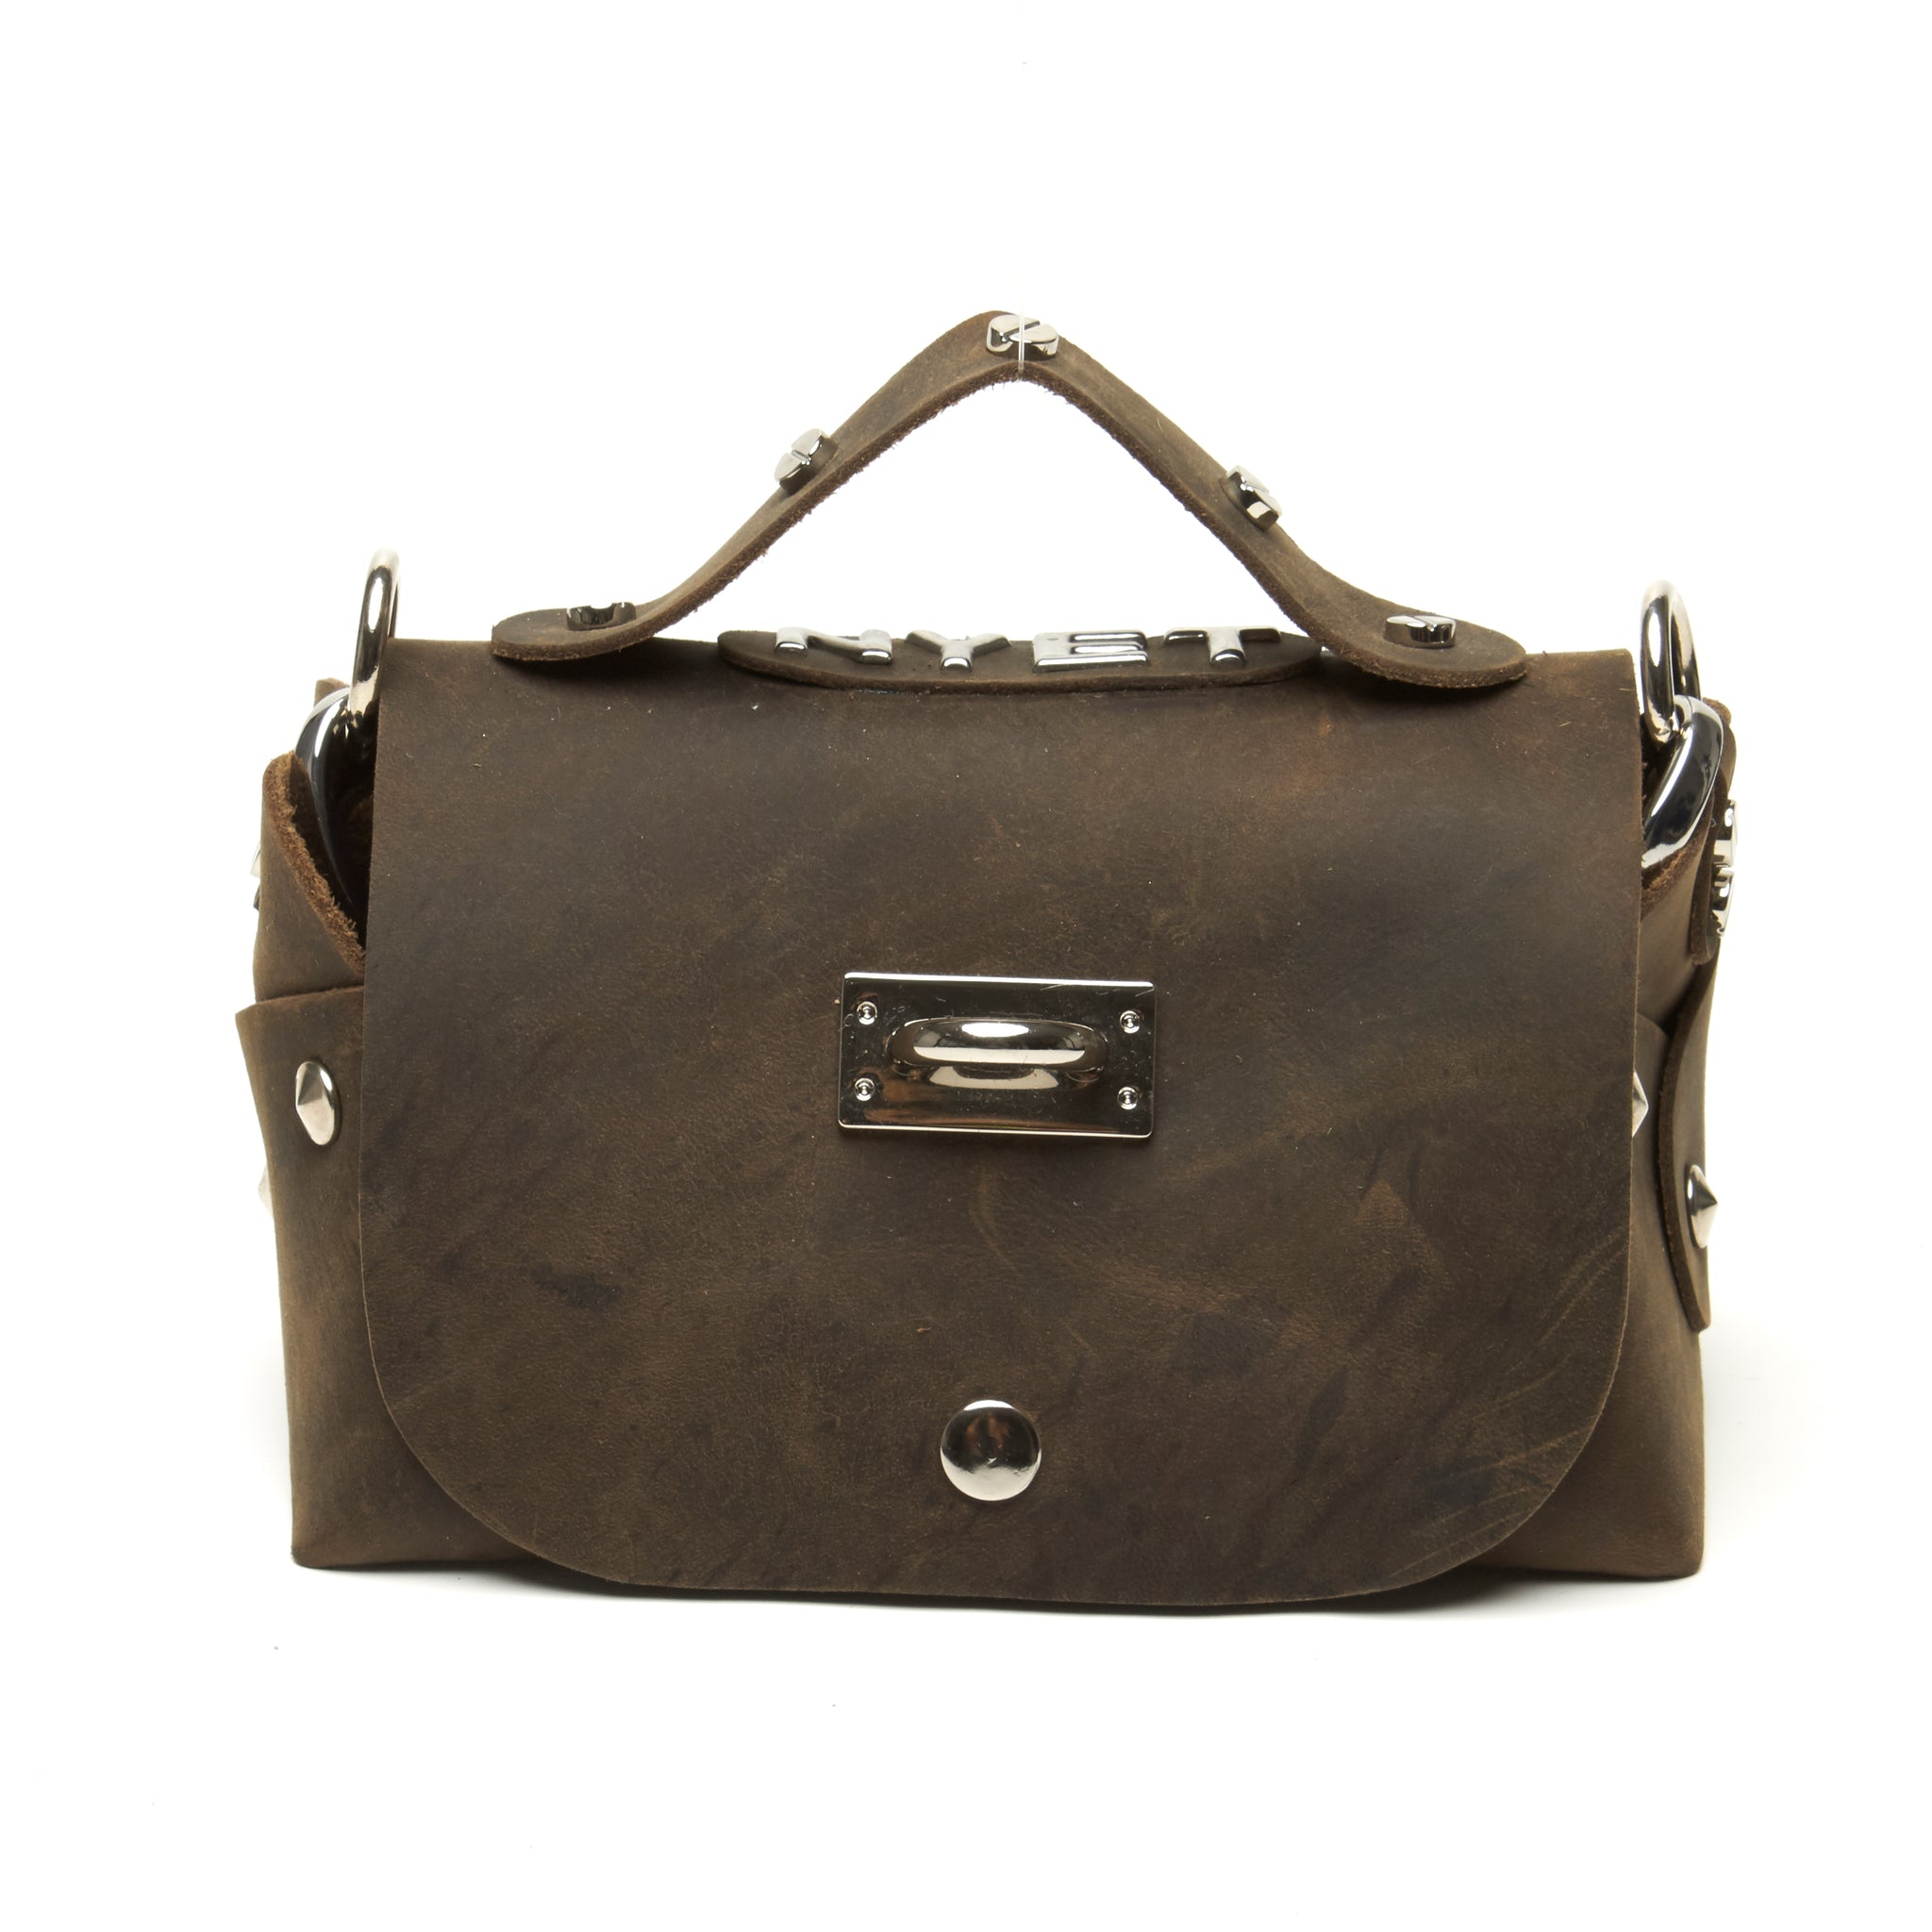 Distressed lunch bag with logo and accent hardware by NYET Jewelry.